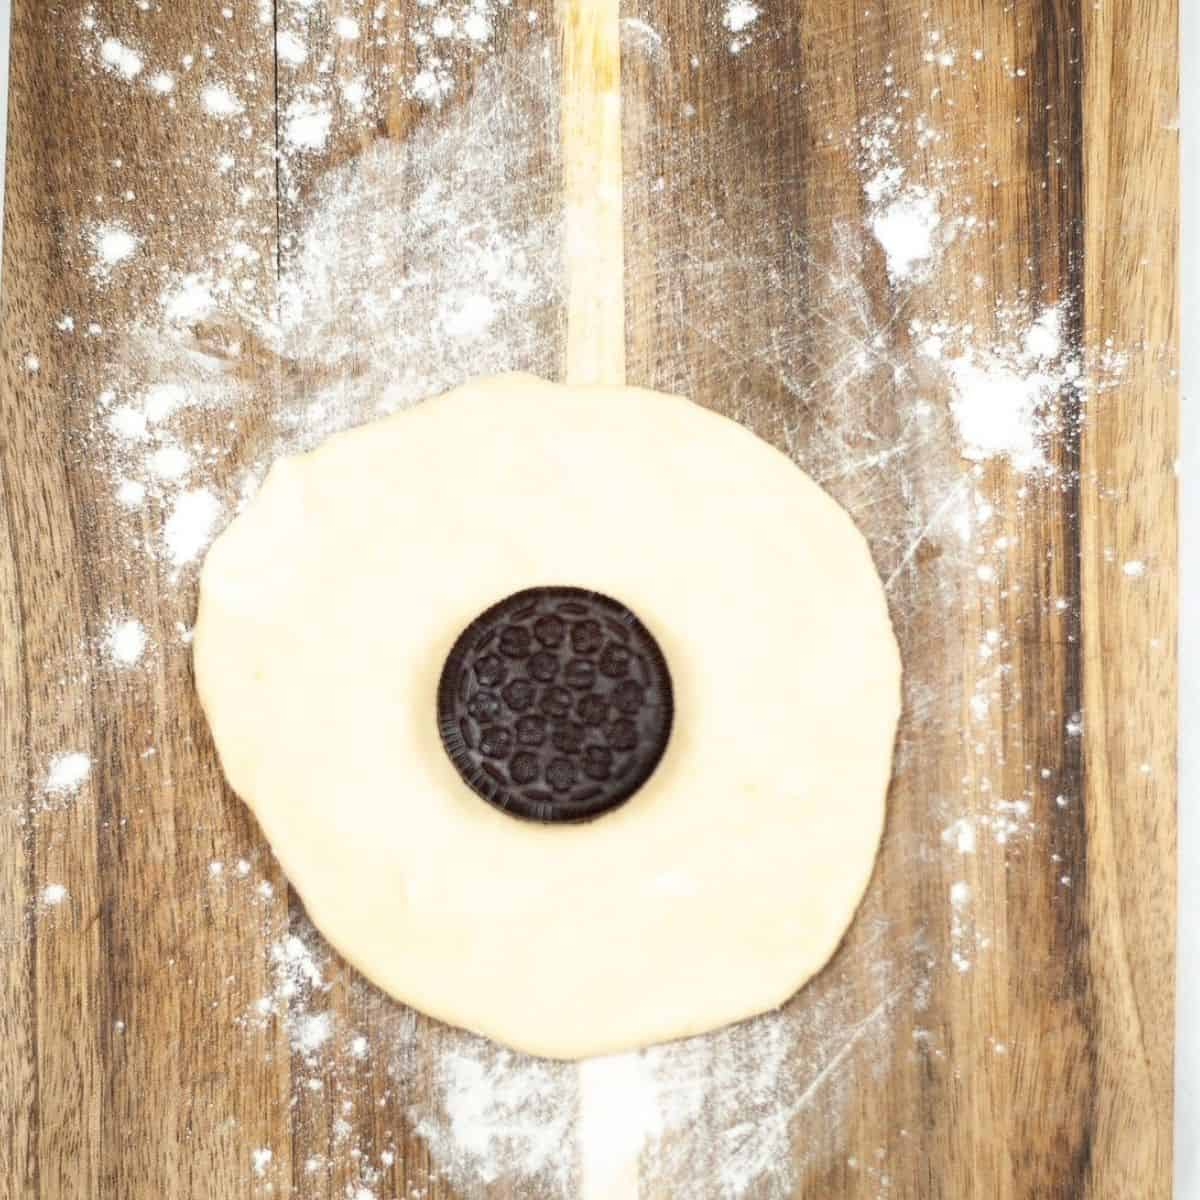 Biscuit dough on a cutting board with an Oreo in the middle of the dough.